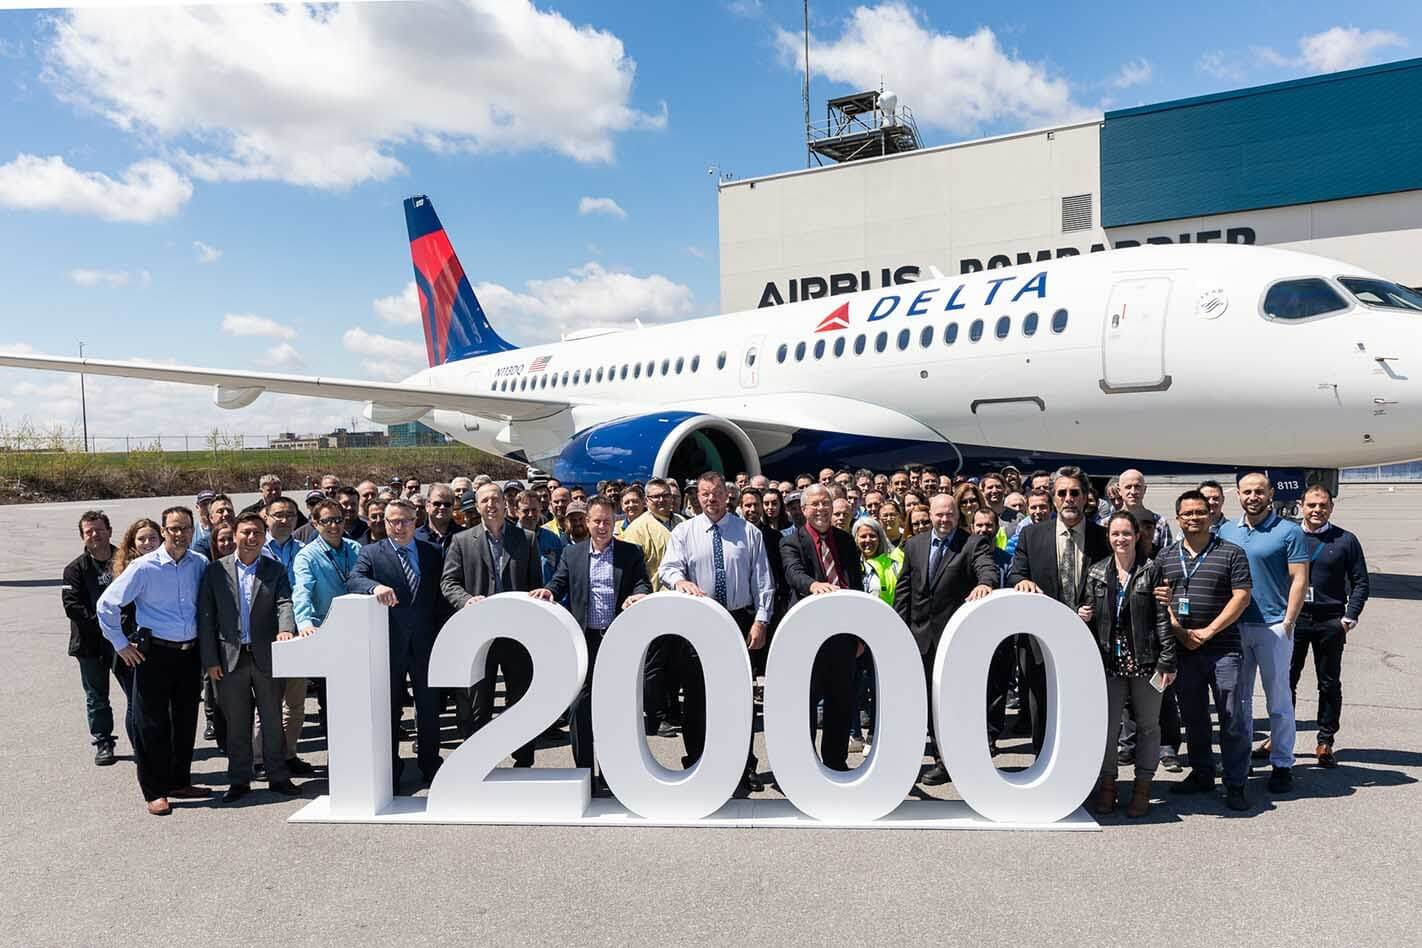 Airbus celebrates delivery of its 12,000th aircraft